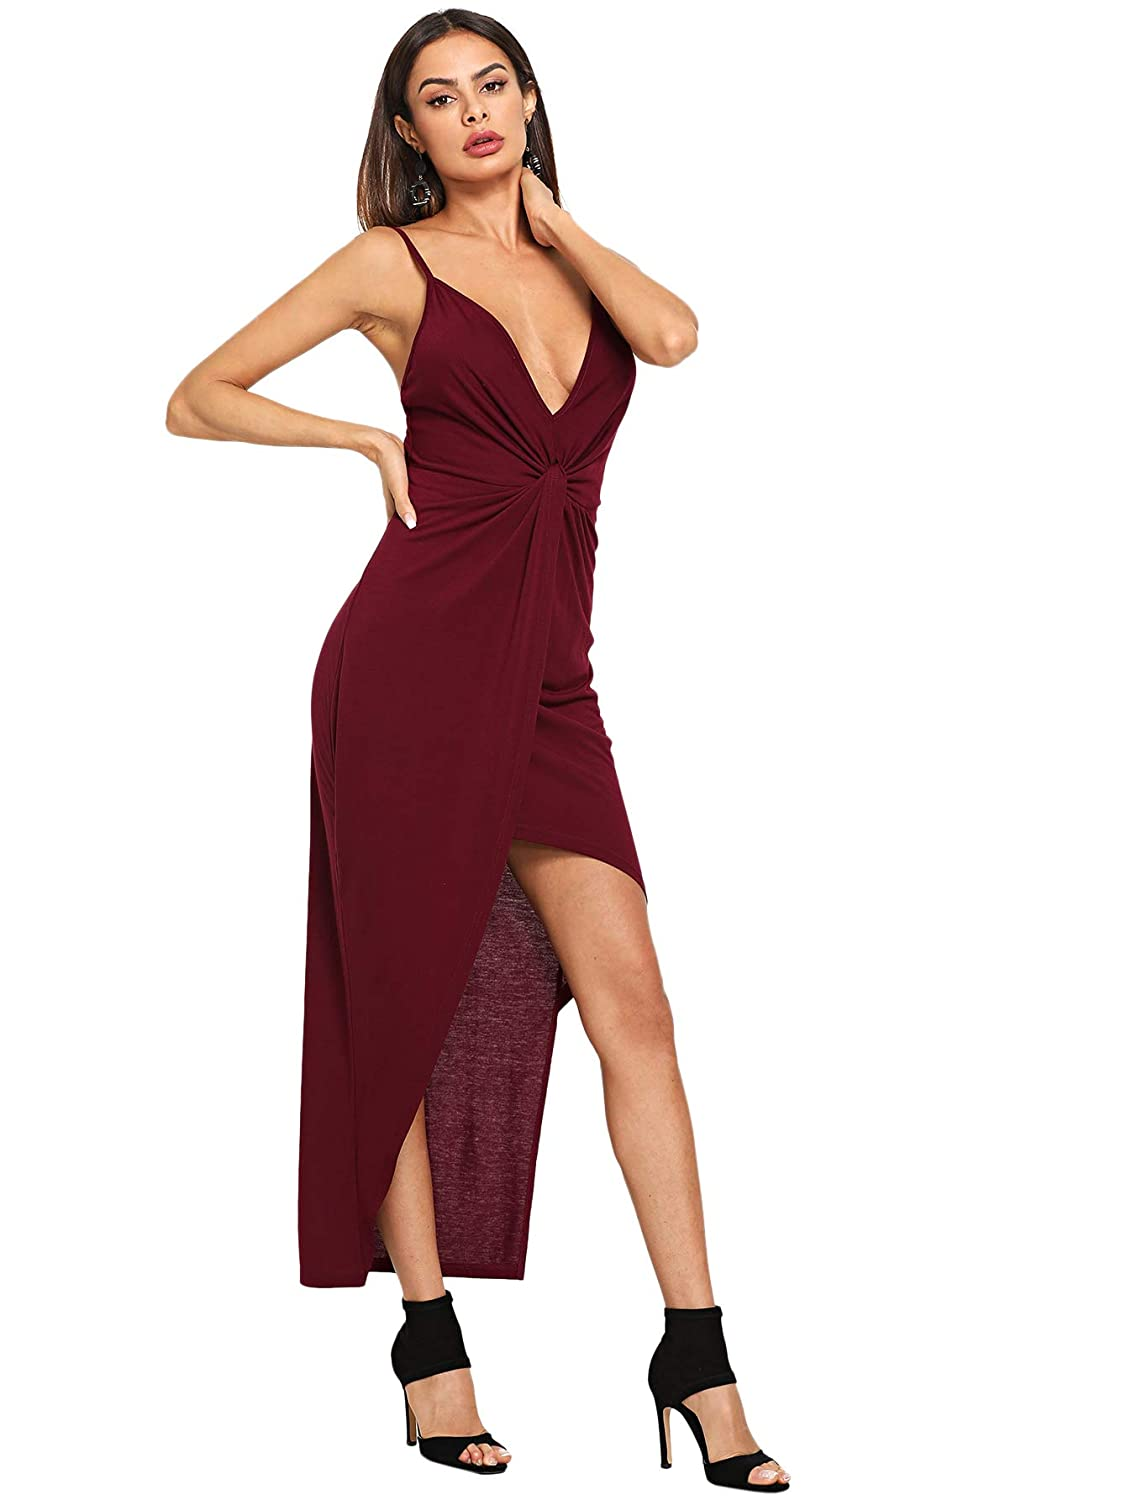 MAKEMECHIC Women s Deep V Neck Sleeveless Twist Knot Front High Low Party  Dress at Amazon Women s Clothing store  f431e55c0